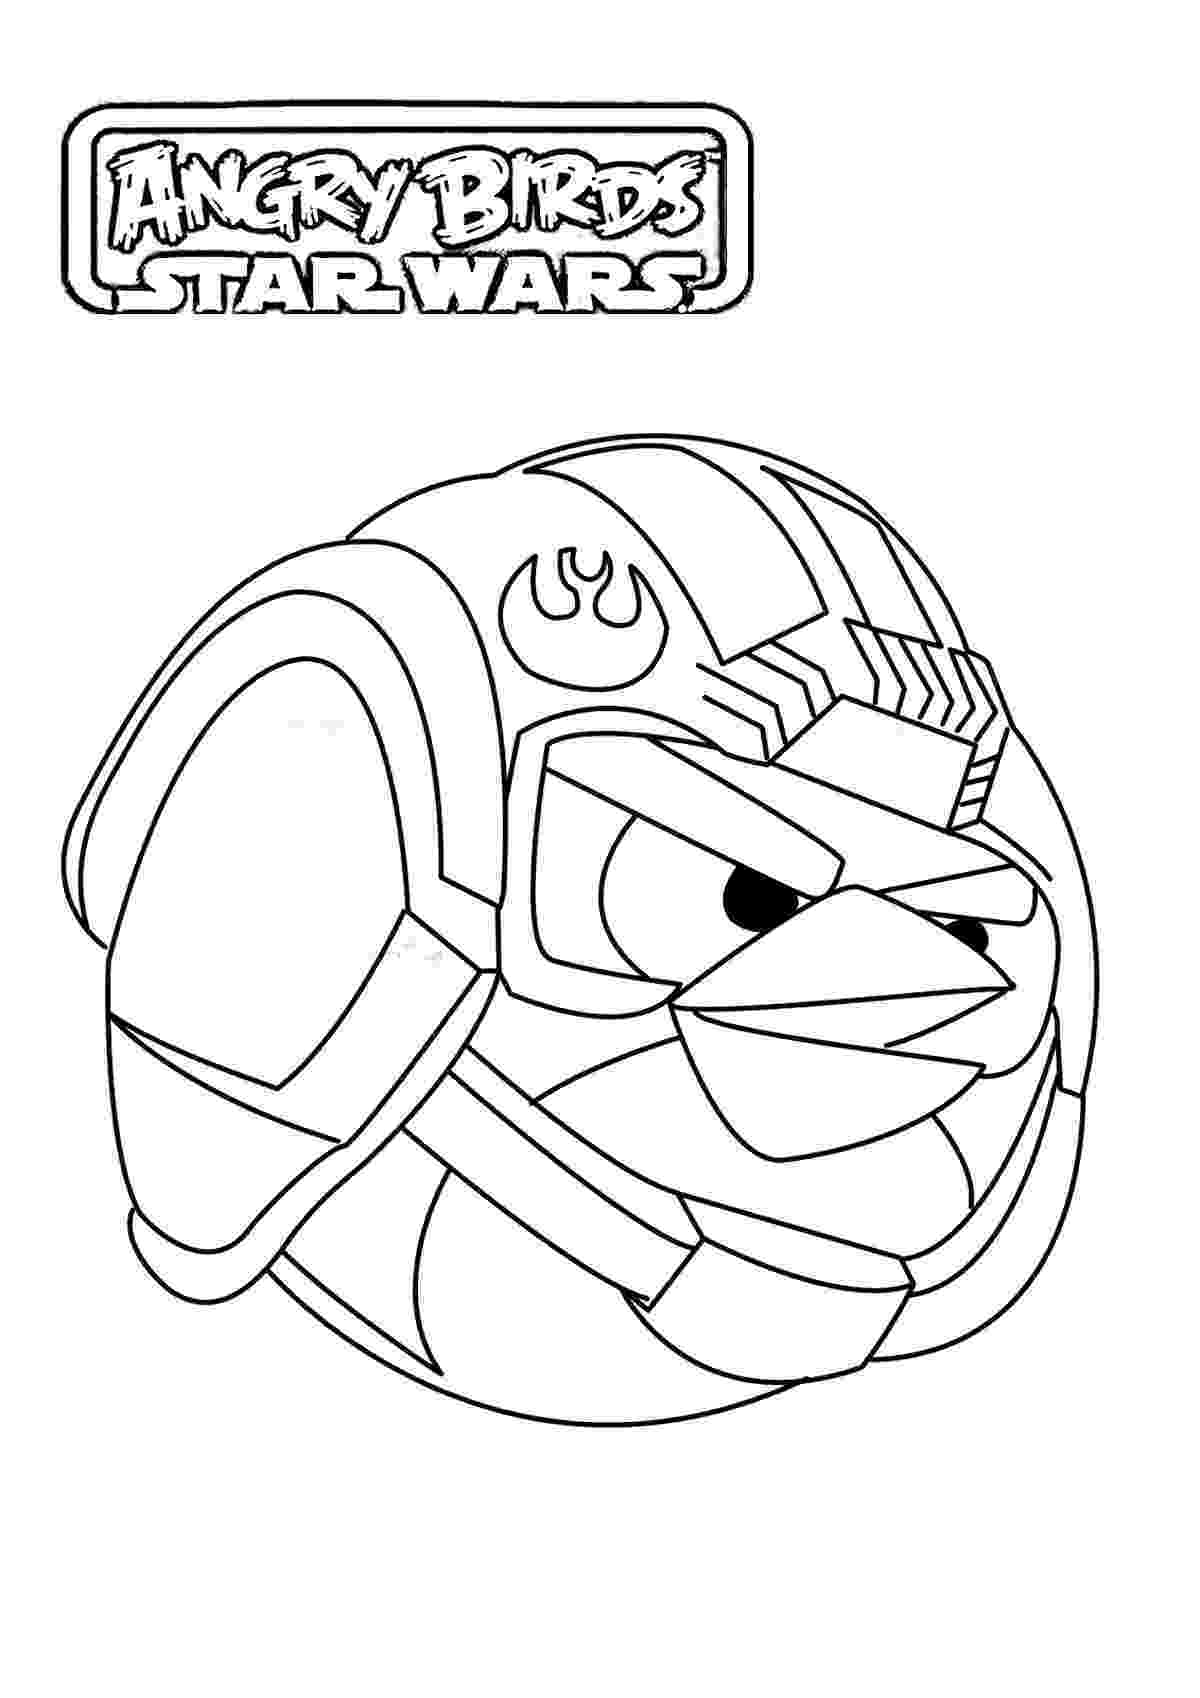 star wars angry birds coloring pages angry birds star wars coloring pages free printable birds wars star angry coloring pages